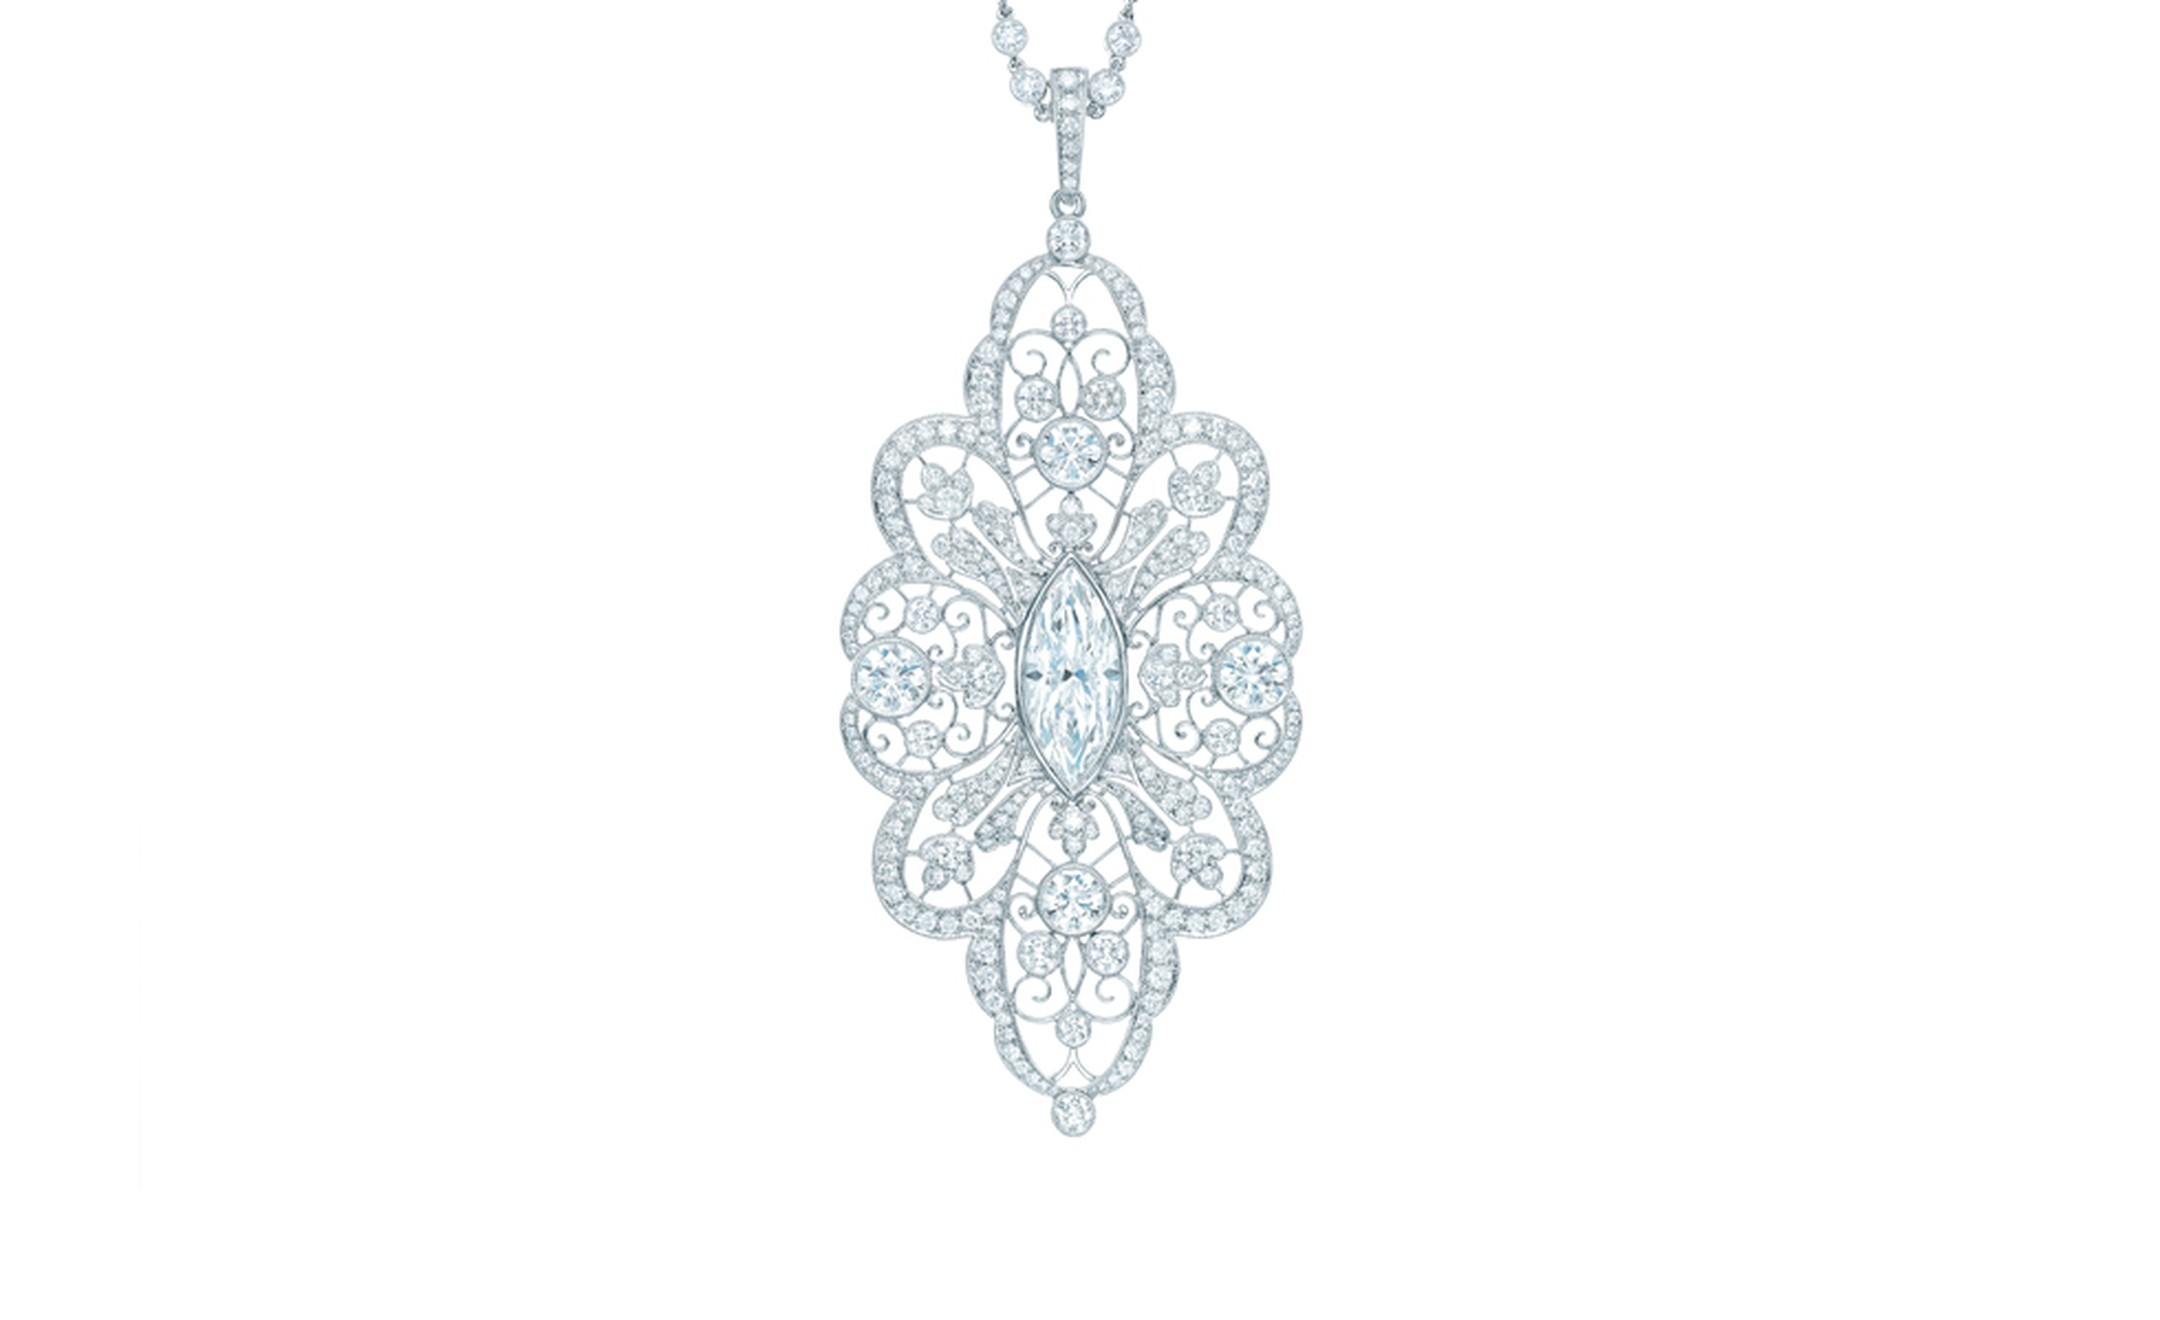 TIFFANY, Diamond Pendant. Price from $335,000